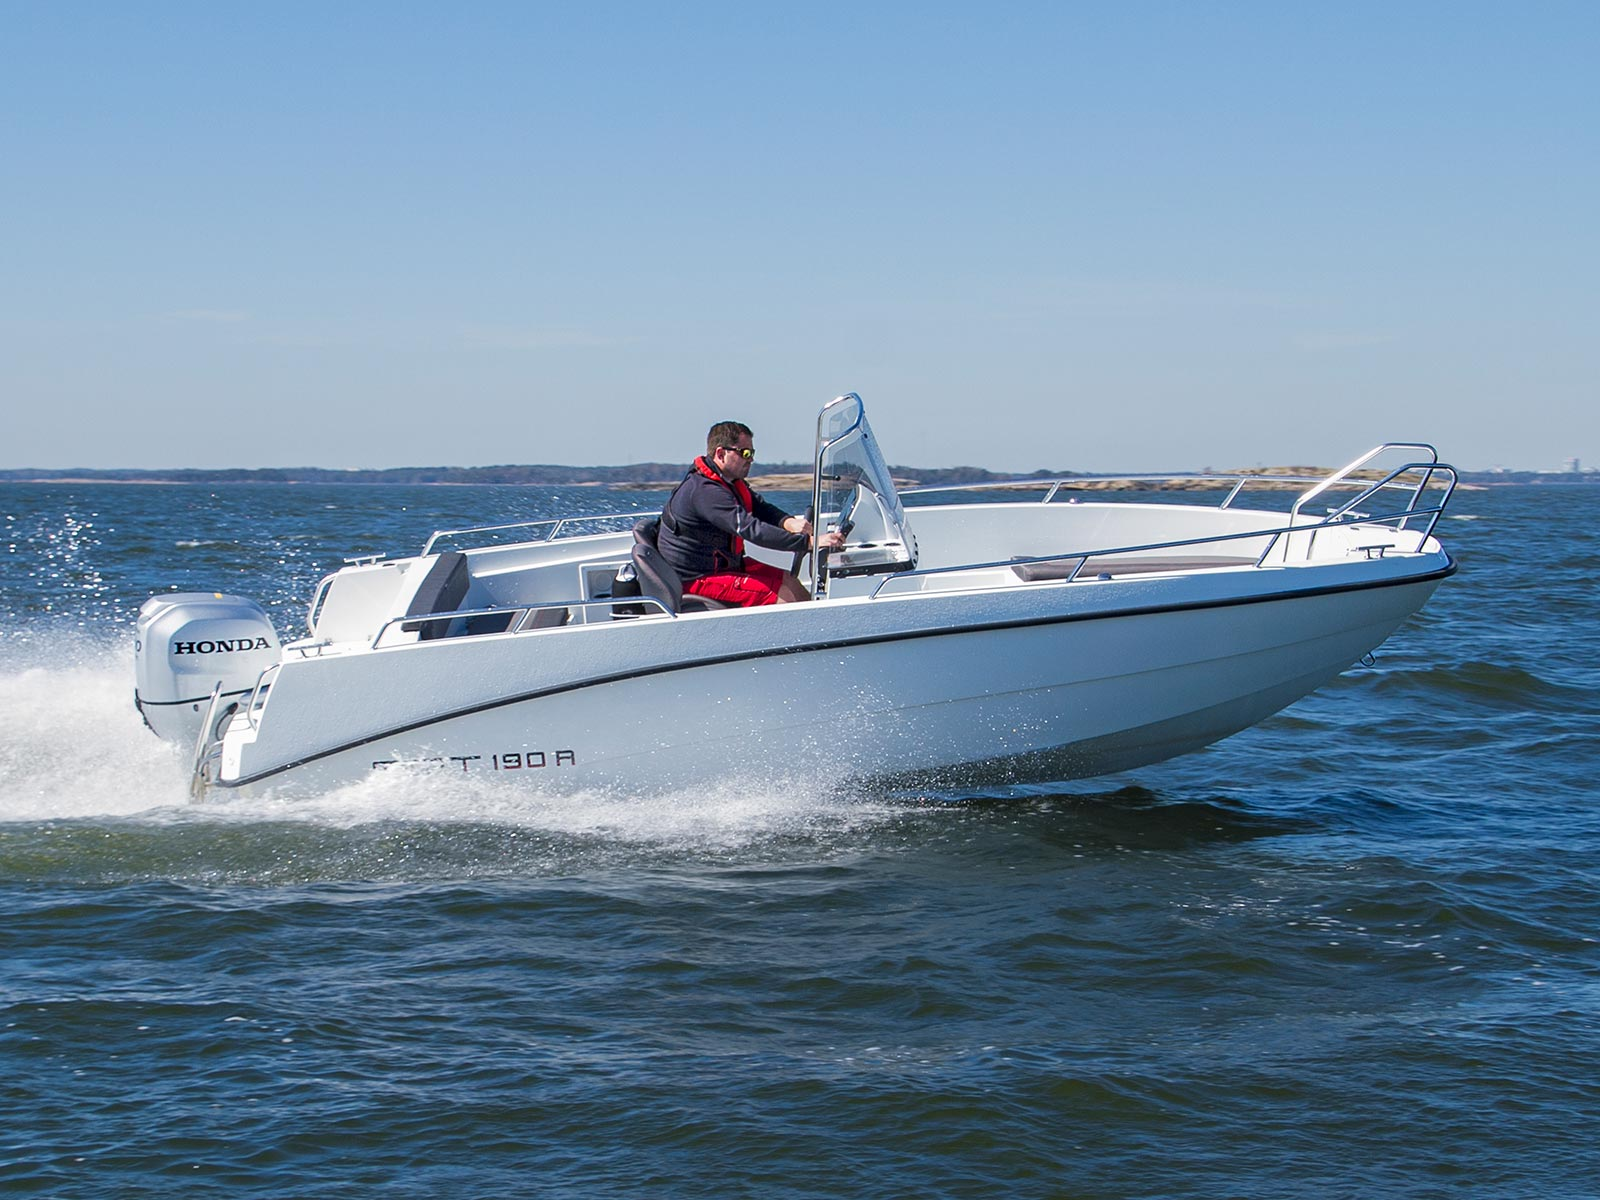 AMT 190 R | Boat Solutions, Utting am Ammersee